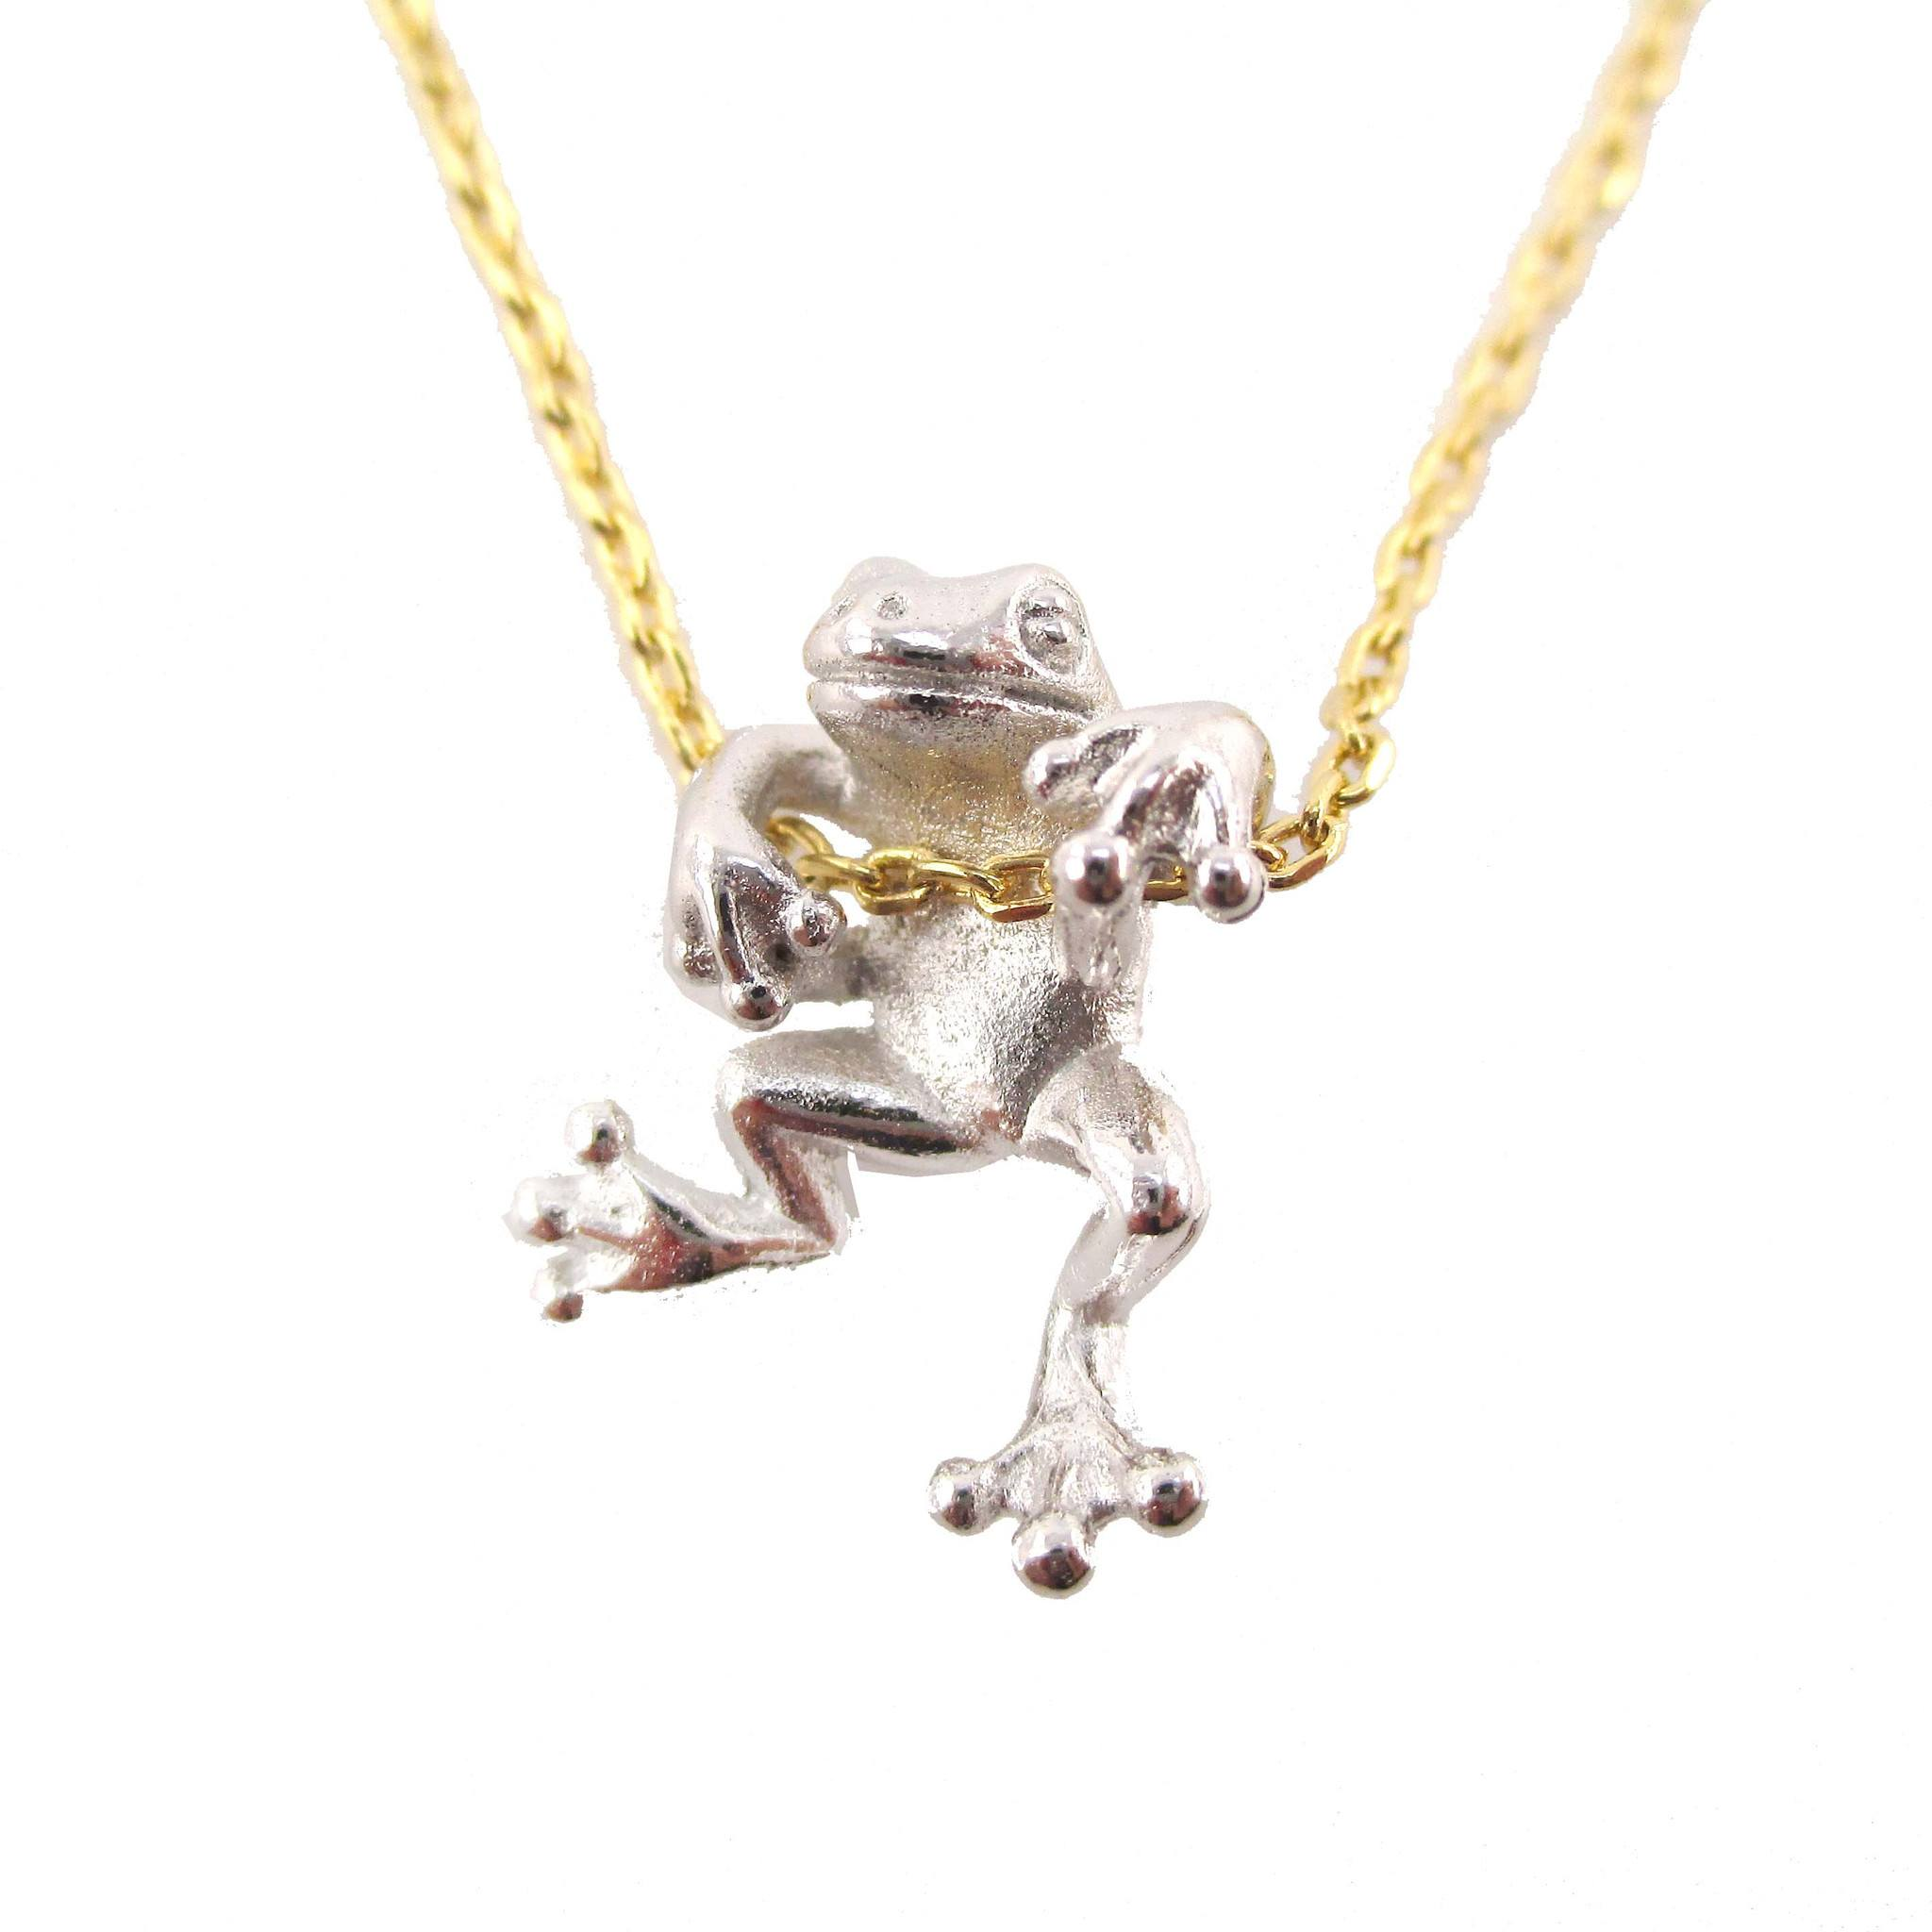 Realistic Frog Pendant Dangling on a Chain Necklace in Silver on Gold